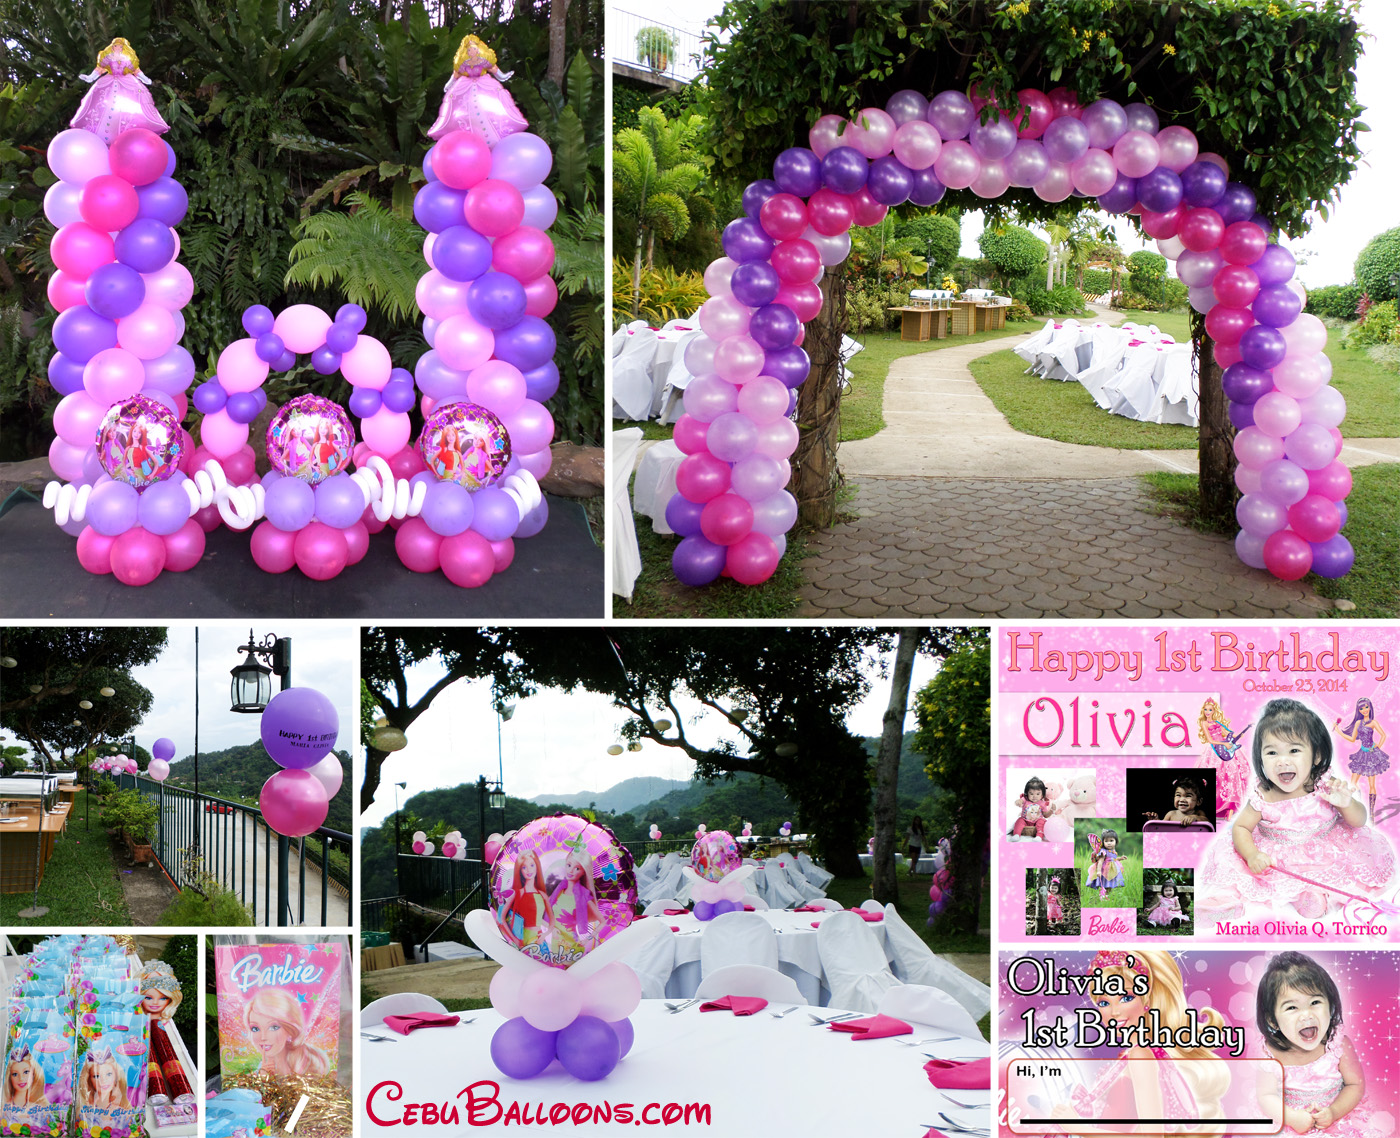 Barbie Theme Balloon Decoration Party Supplies At Chateau De Busay